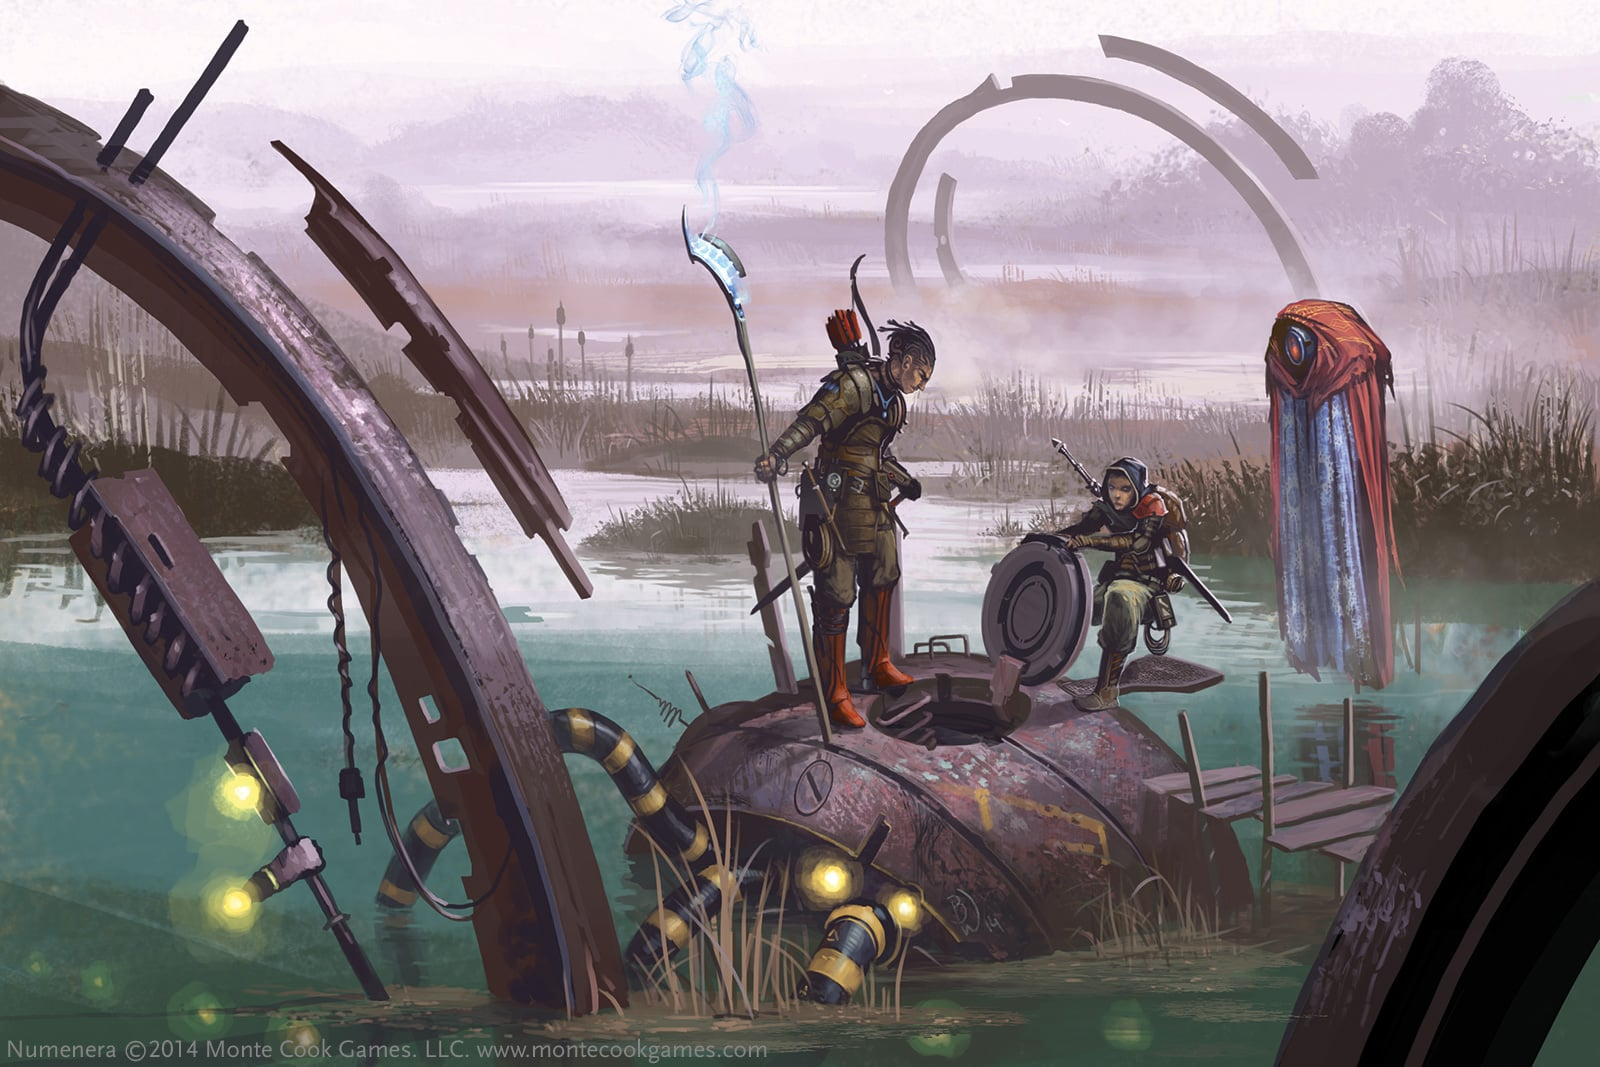 EXPLORING THE MYSTERIES OF THE ANCIENT WORLDS. ART BY BEN WOOTTEN.